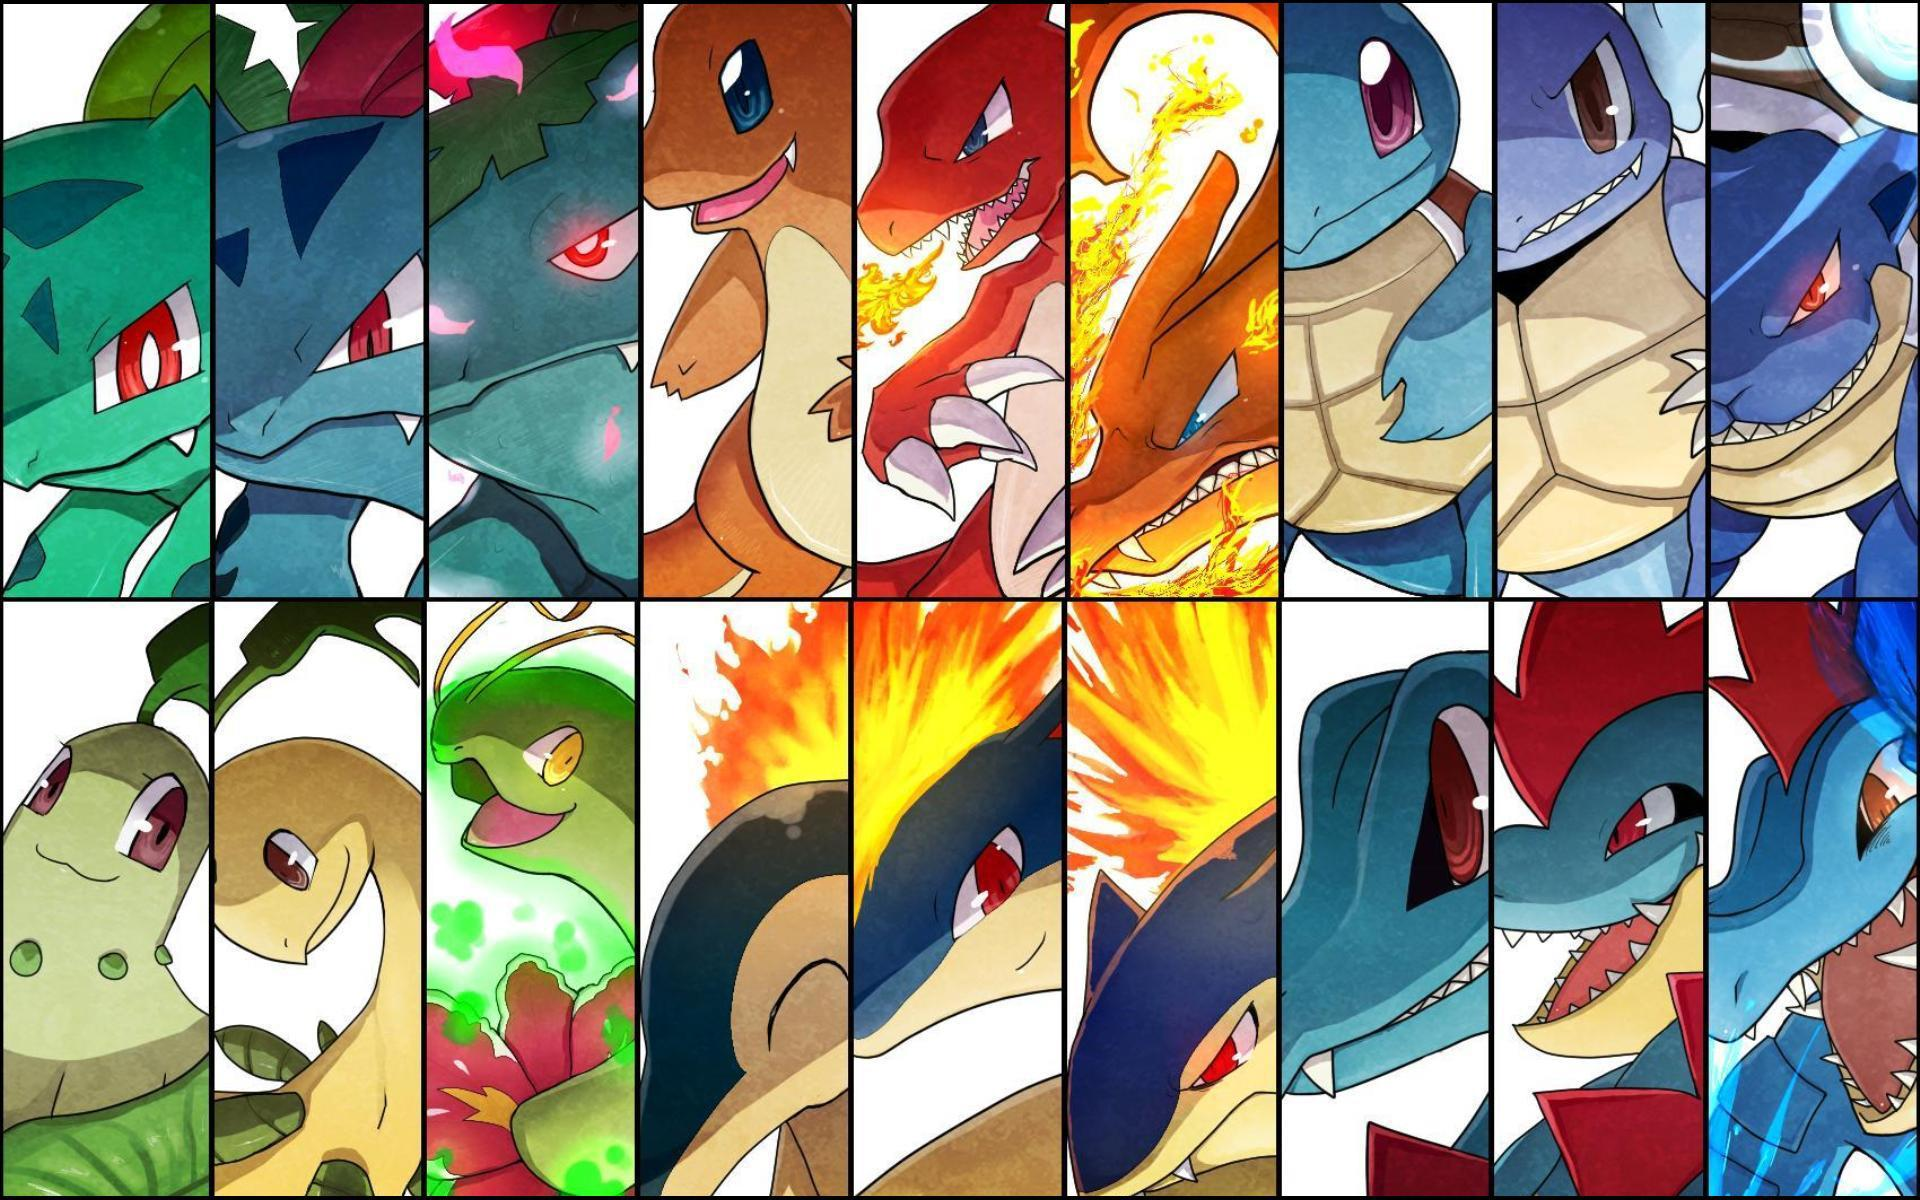 We've been forced to choose a Fire, Grass or Water starter since Pokemon's inception in 1996. After Pokemon Sword and Shield, it's time for a change.